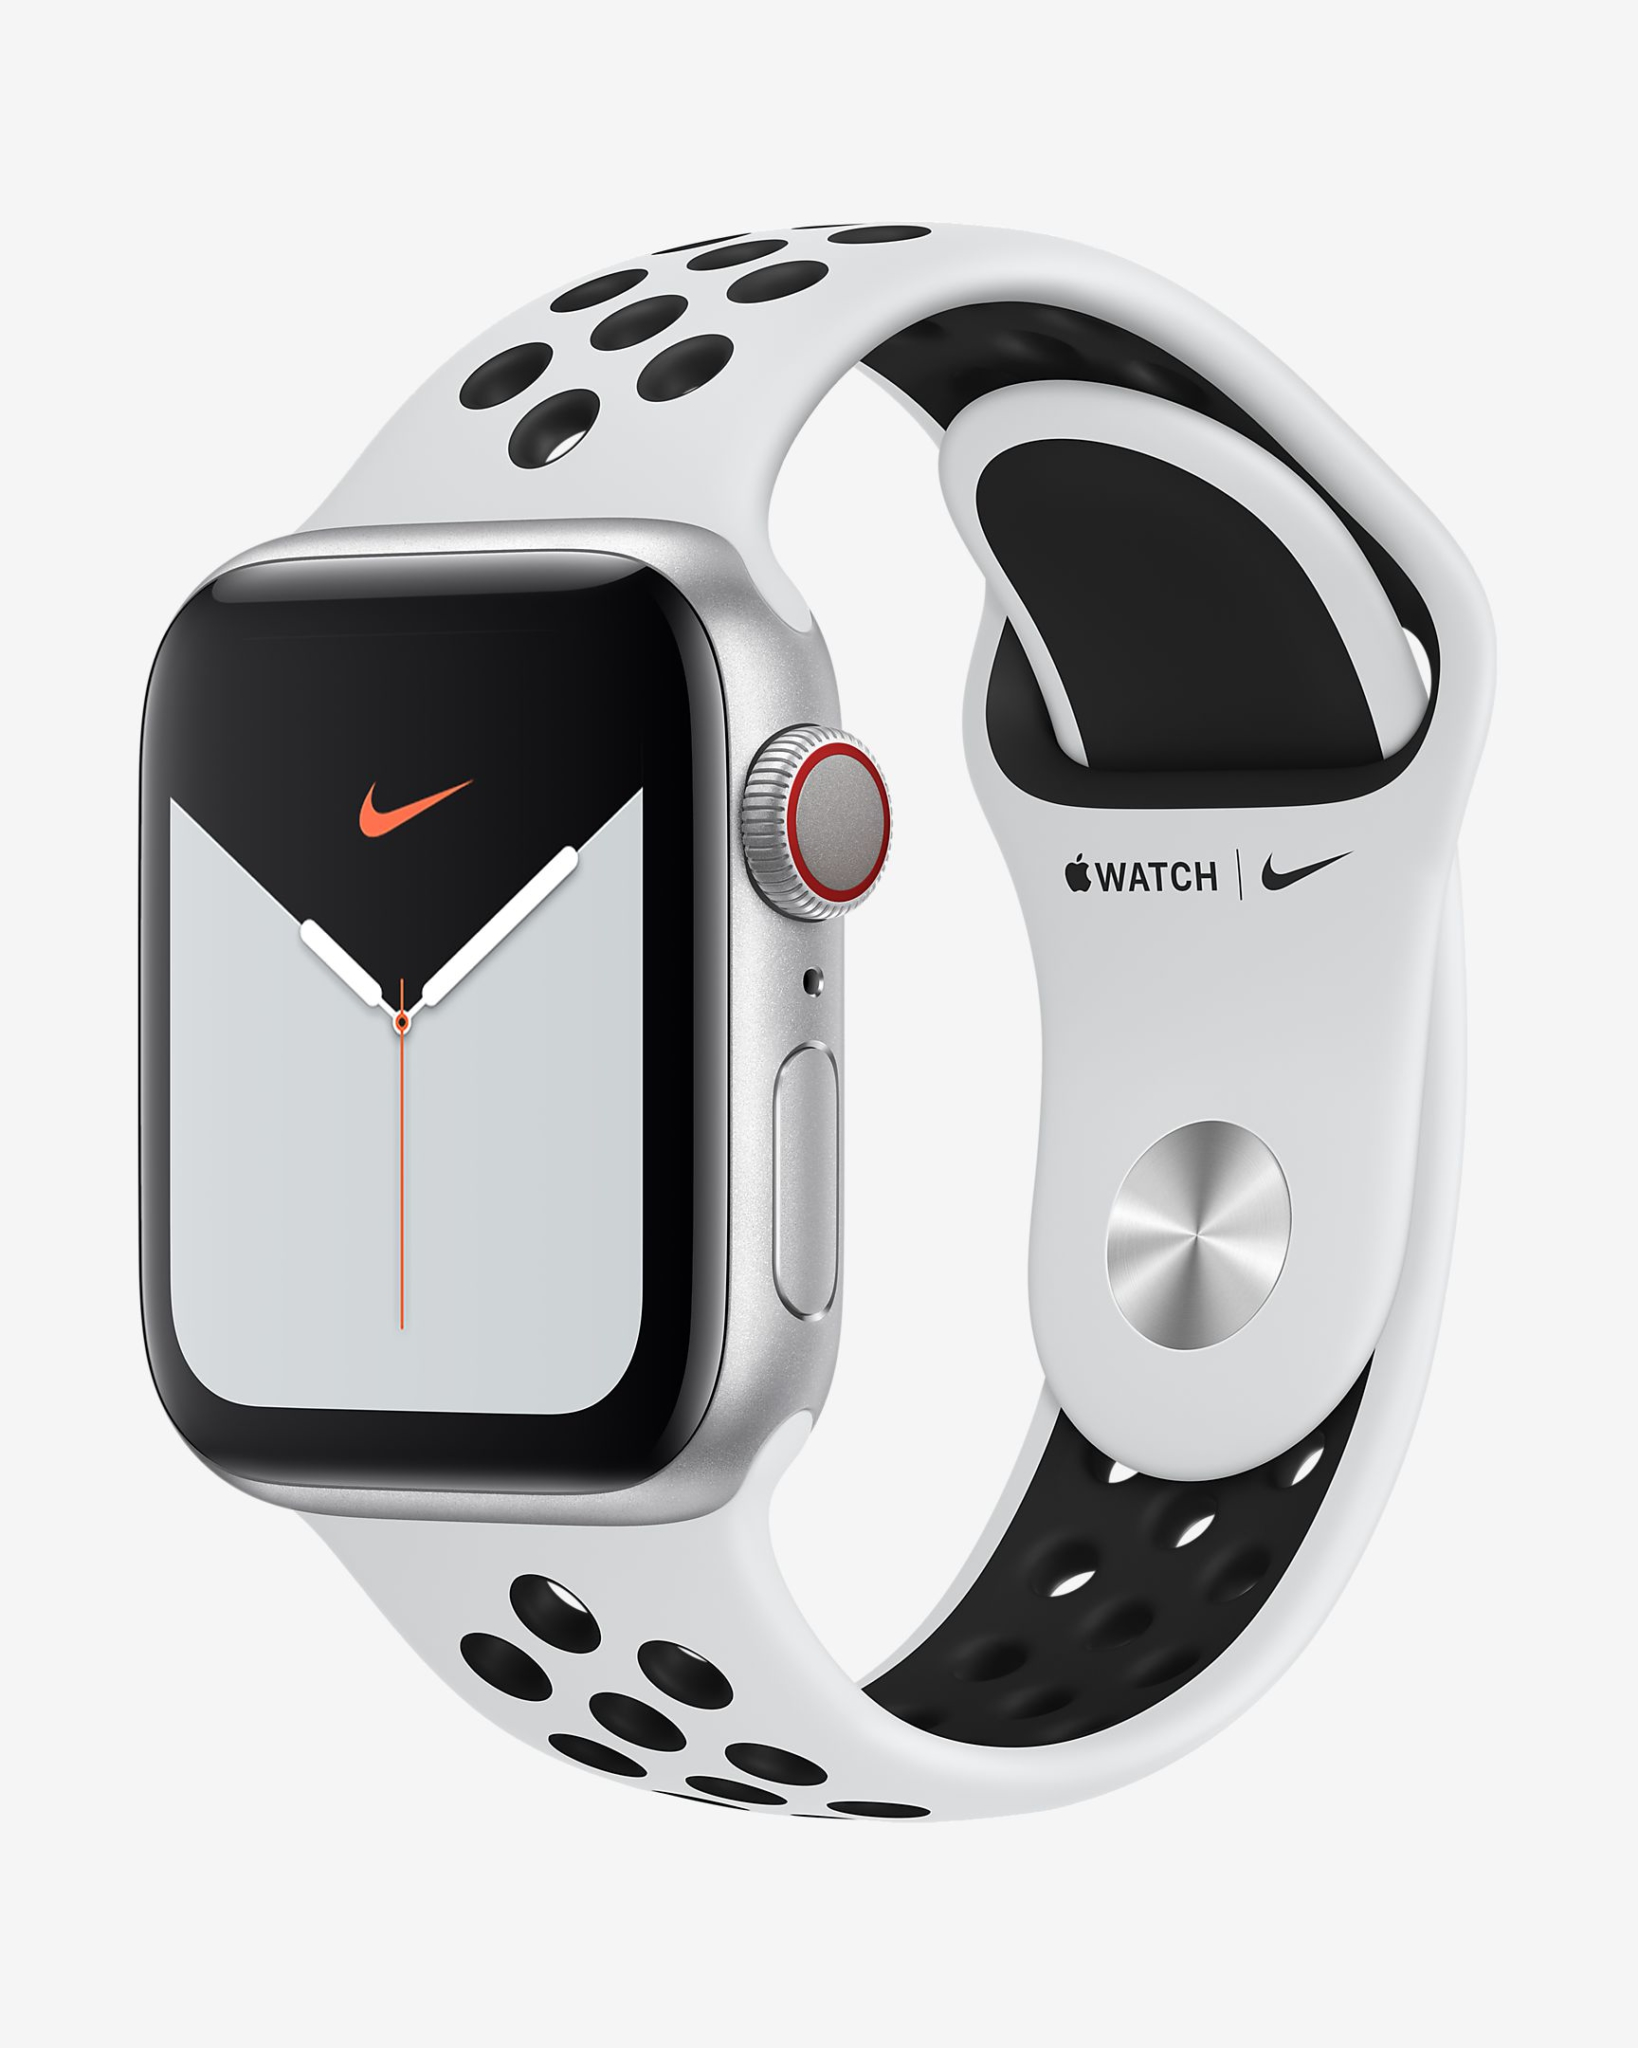 Apple Watch Nike + Series 5 (GPS + Cellular) with Nike Sport strap